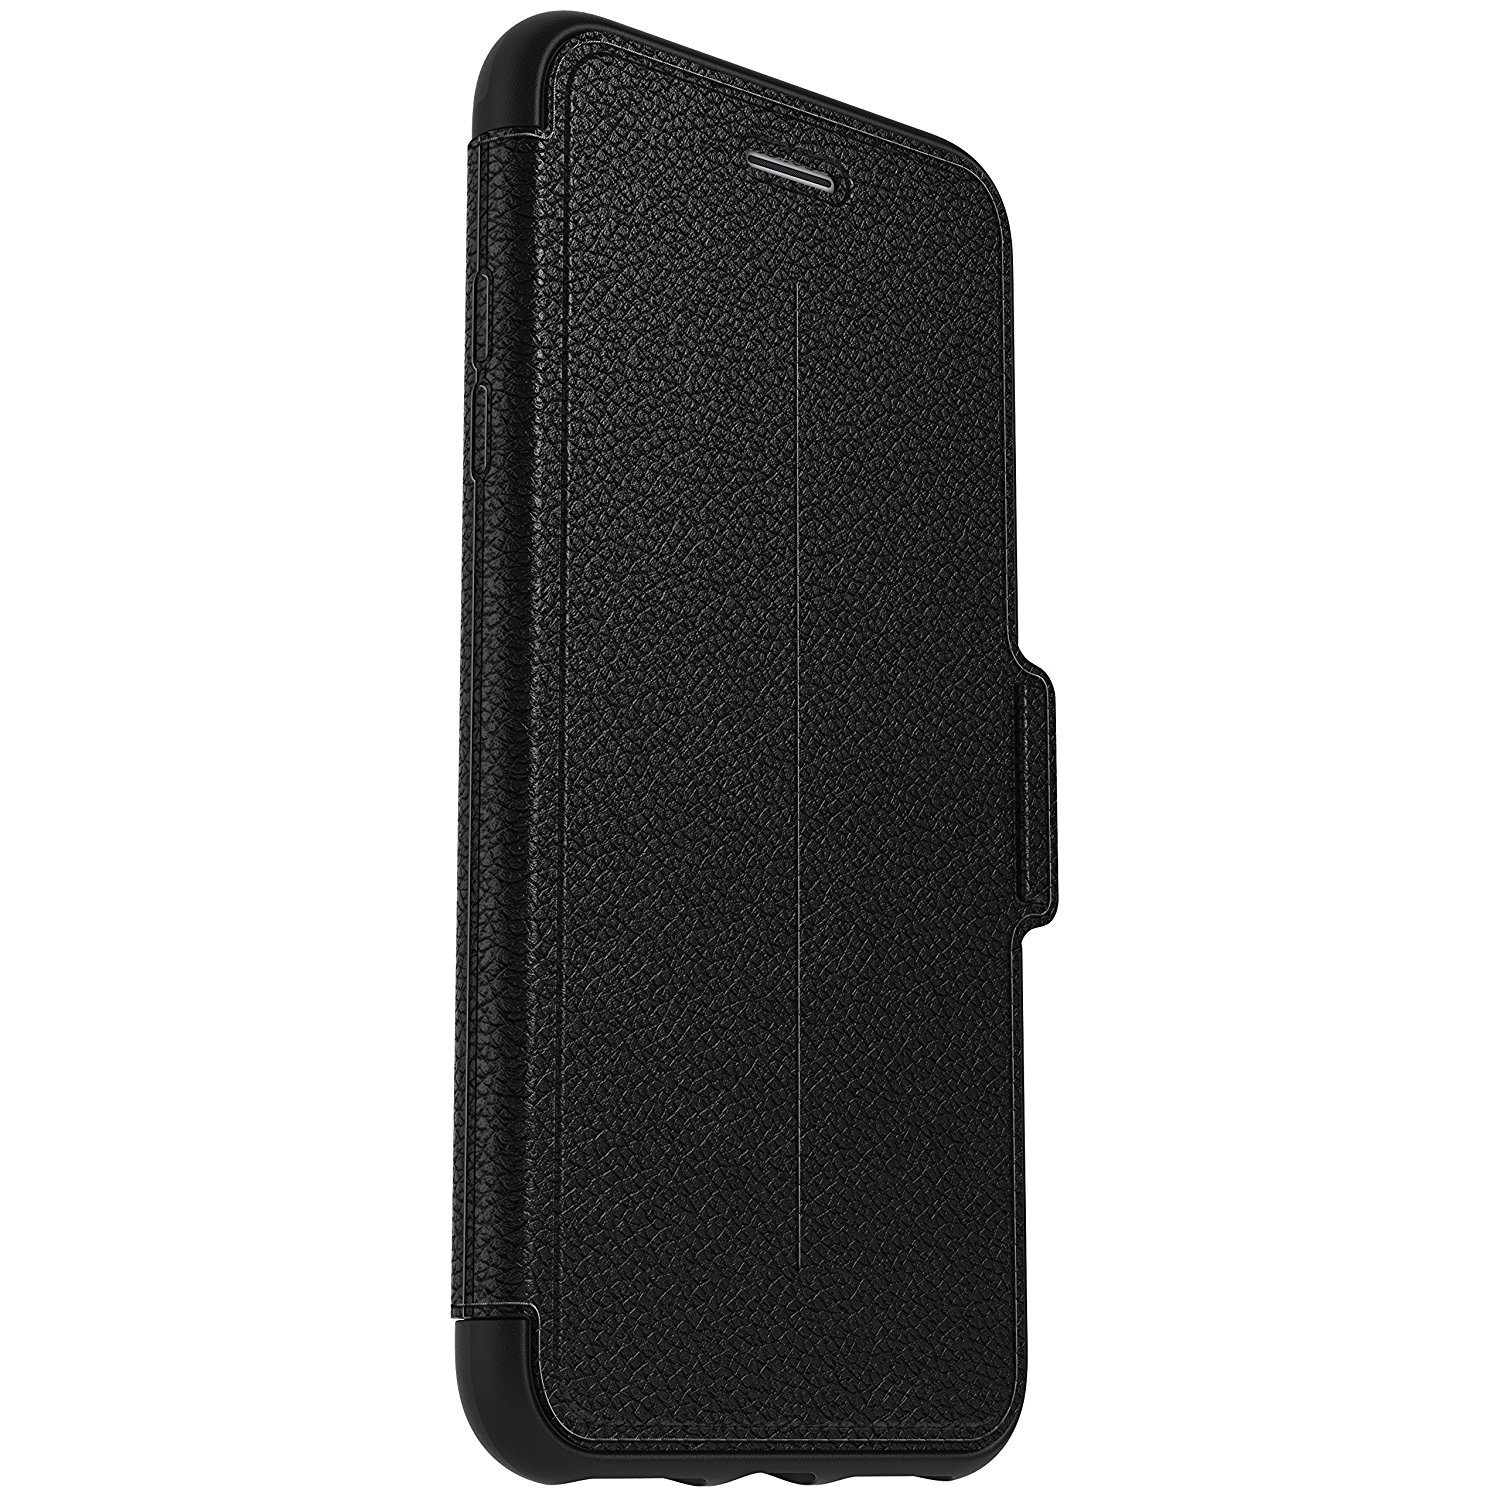 new style a22e6 9843b OtterBox Strada Case for iPhone 7 Plus/8 Plus (Onyx)   Mac-Ave